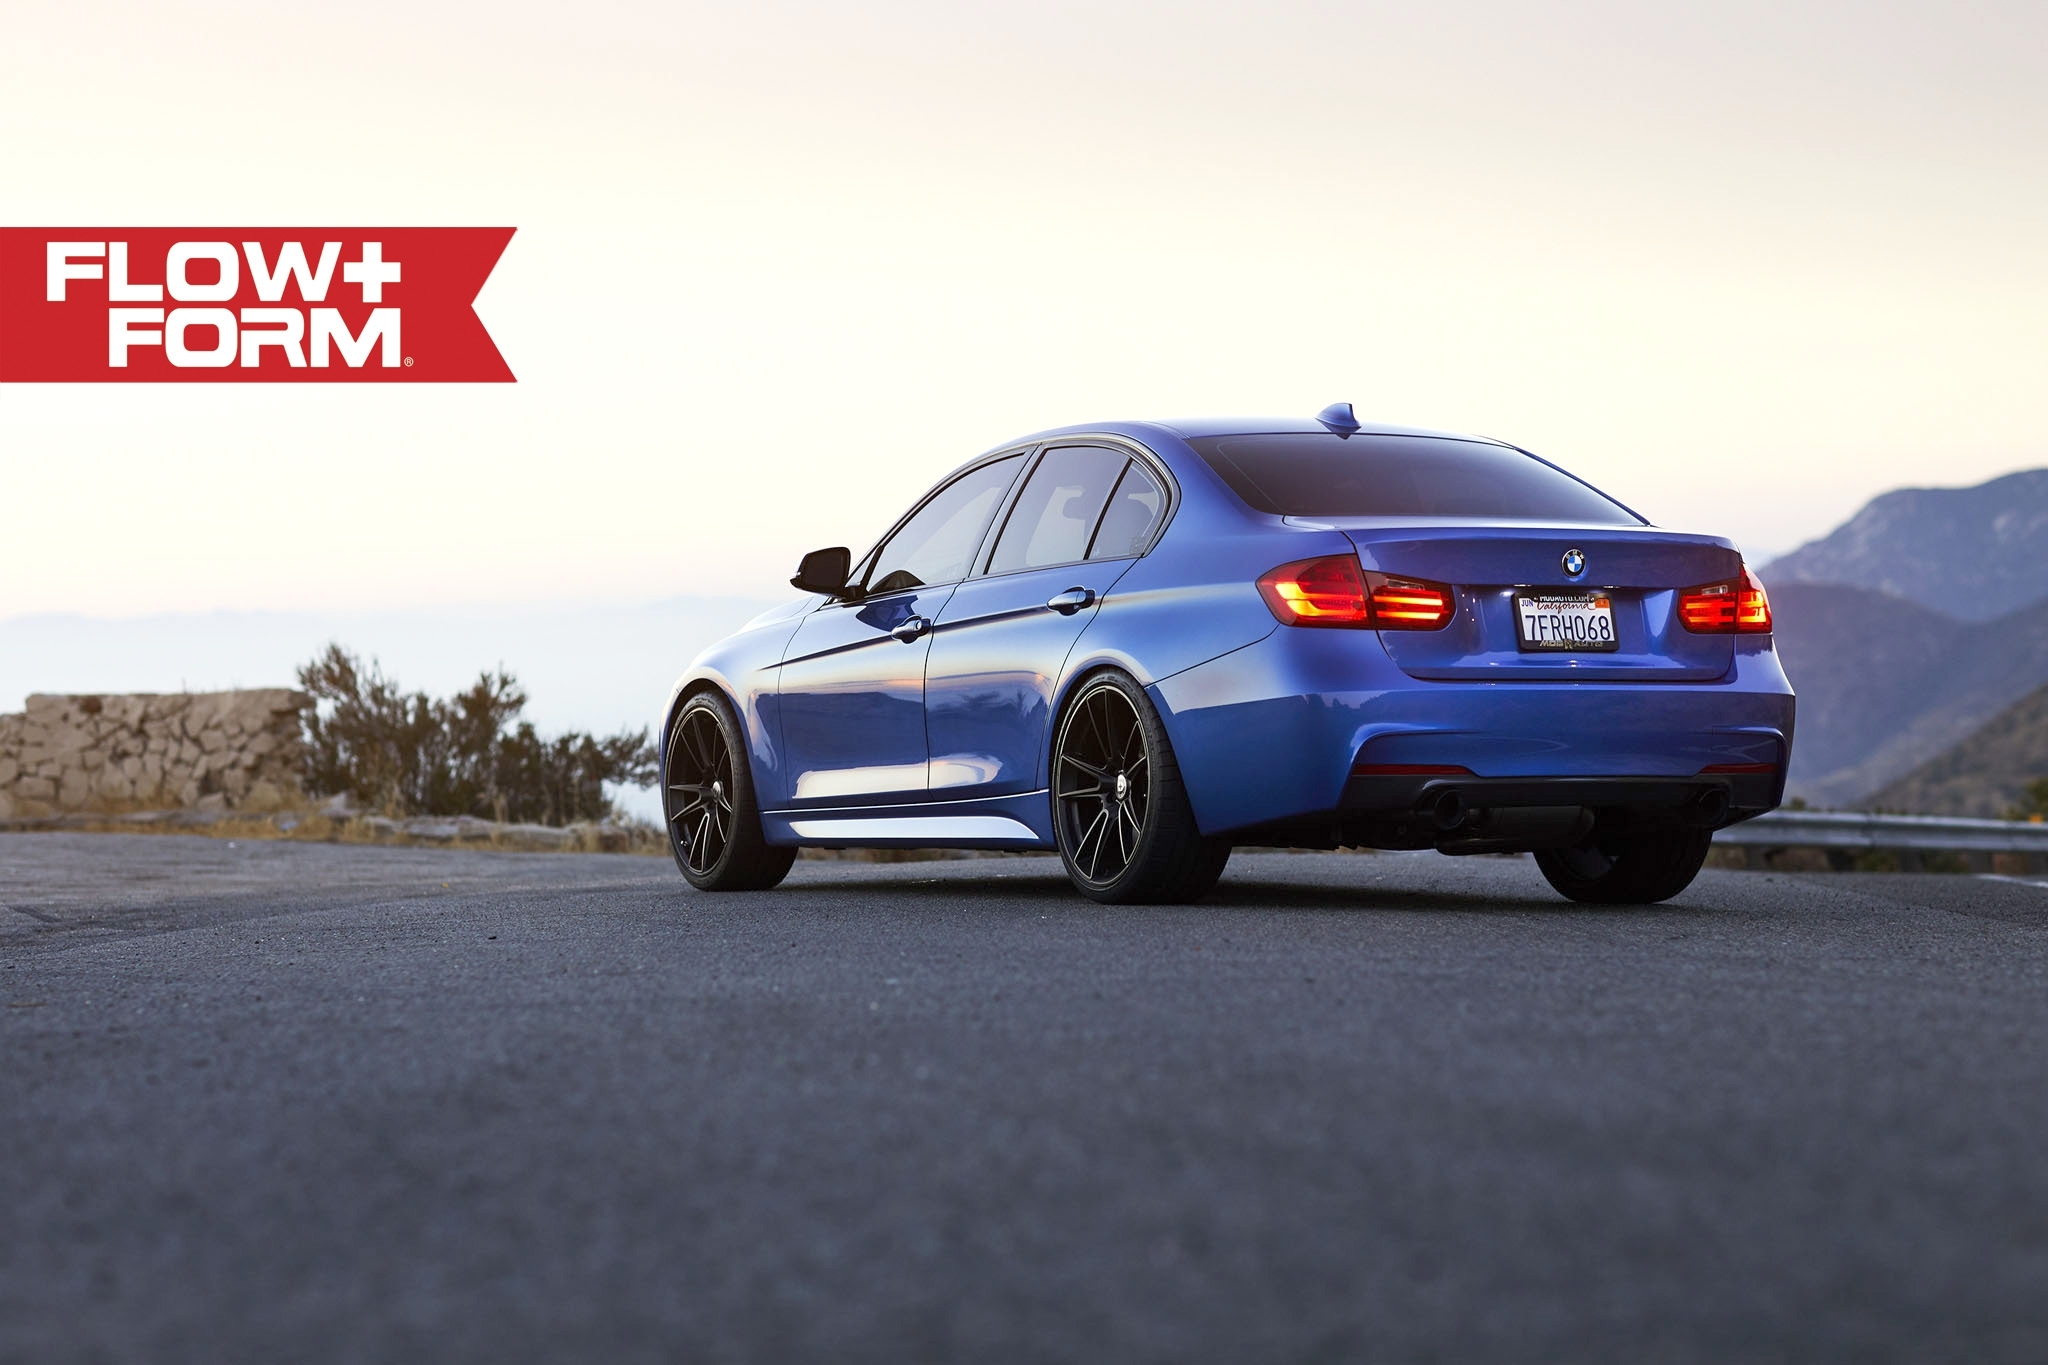 This Is Bmw F30 350i On Hre Wheels Carz Tuning